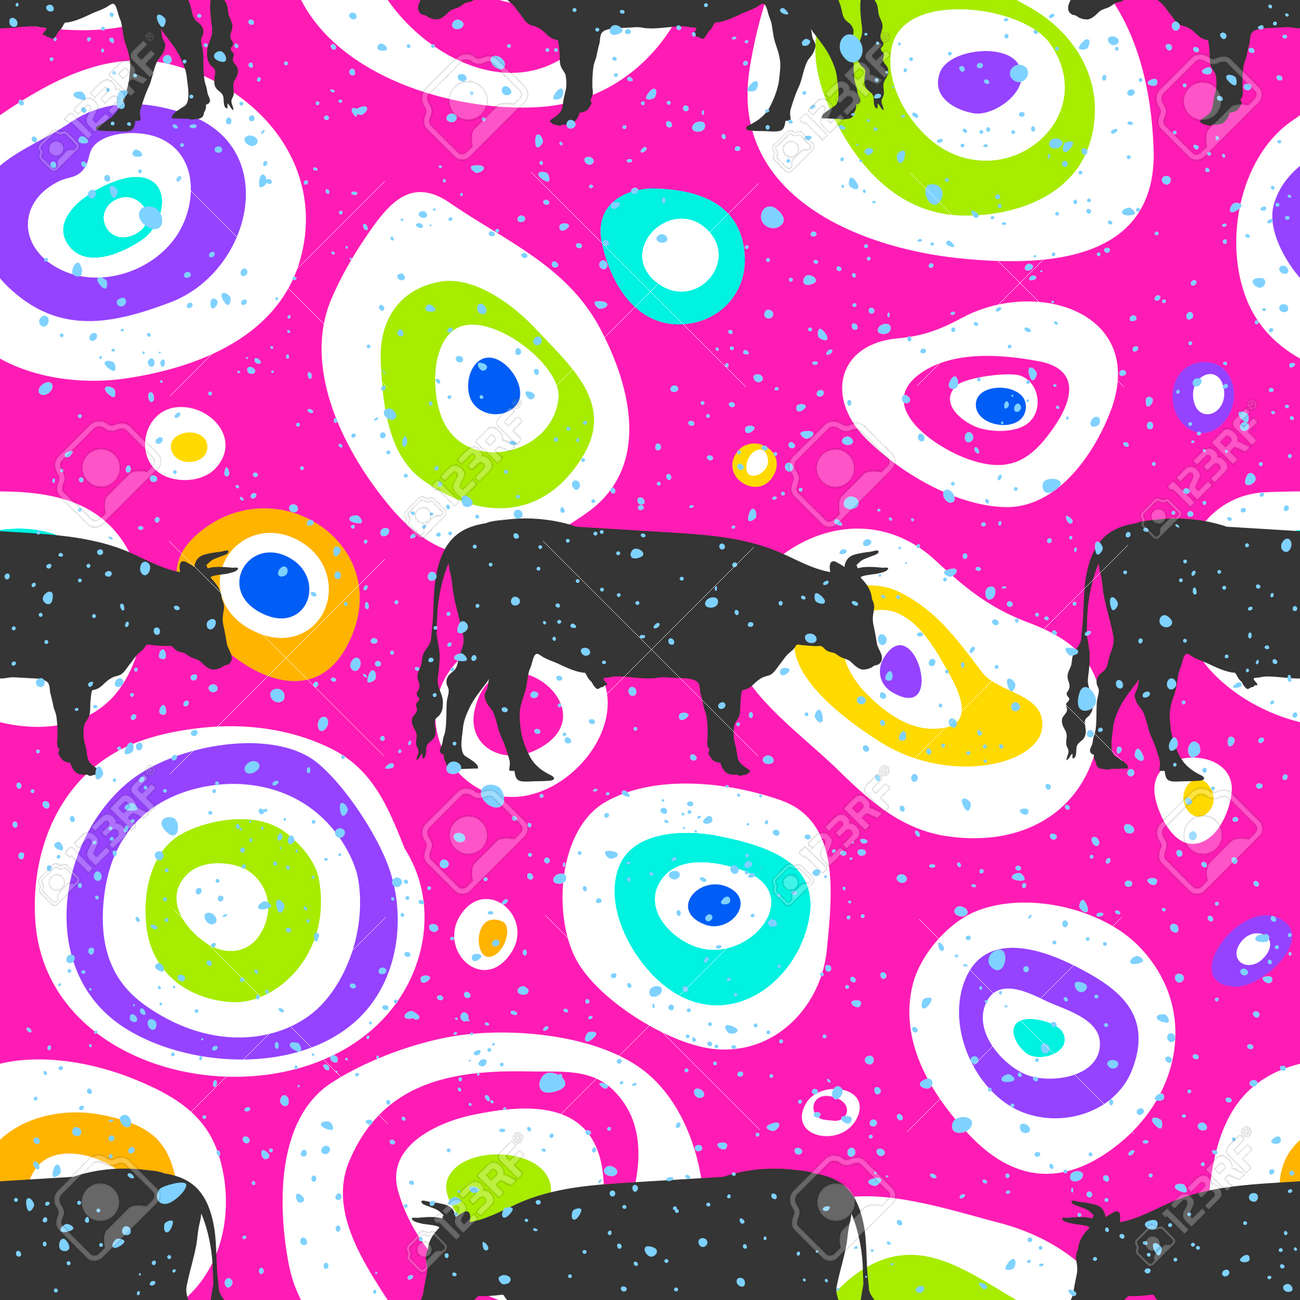 Pop art seamless pattern geometric modern with colorful acid and bull silhouette seamless pattern layout with circle spots. Illustration with set of colorful abstract circles. Vector illustration - 158853877